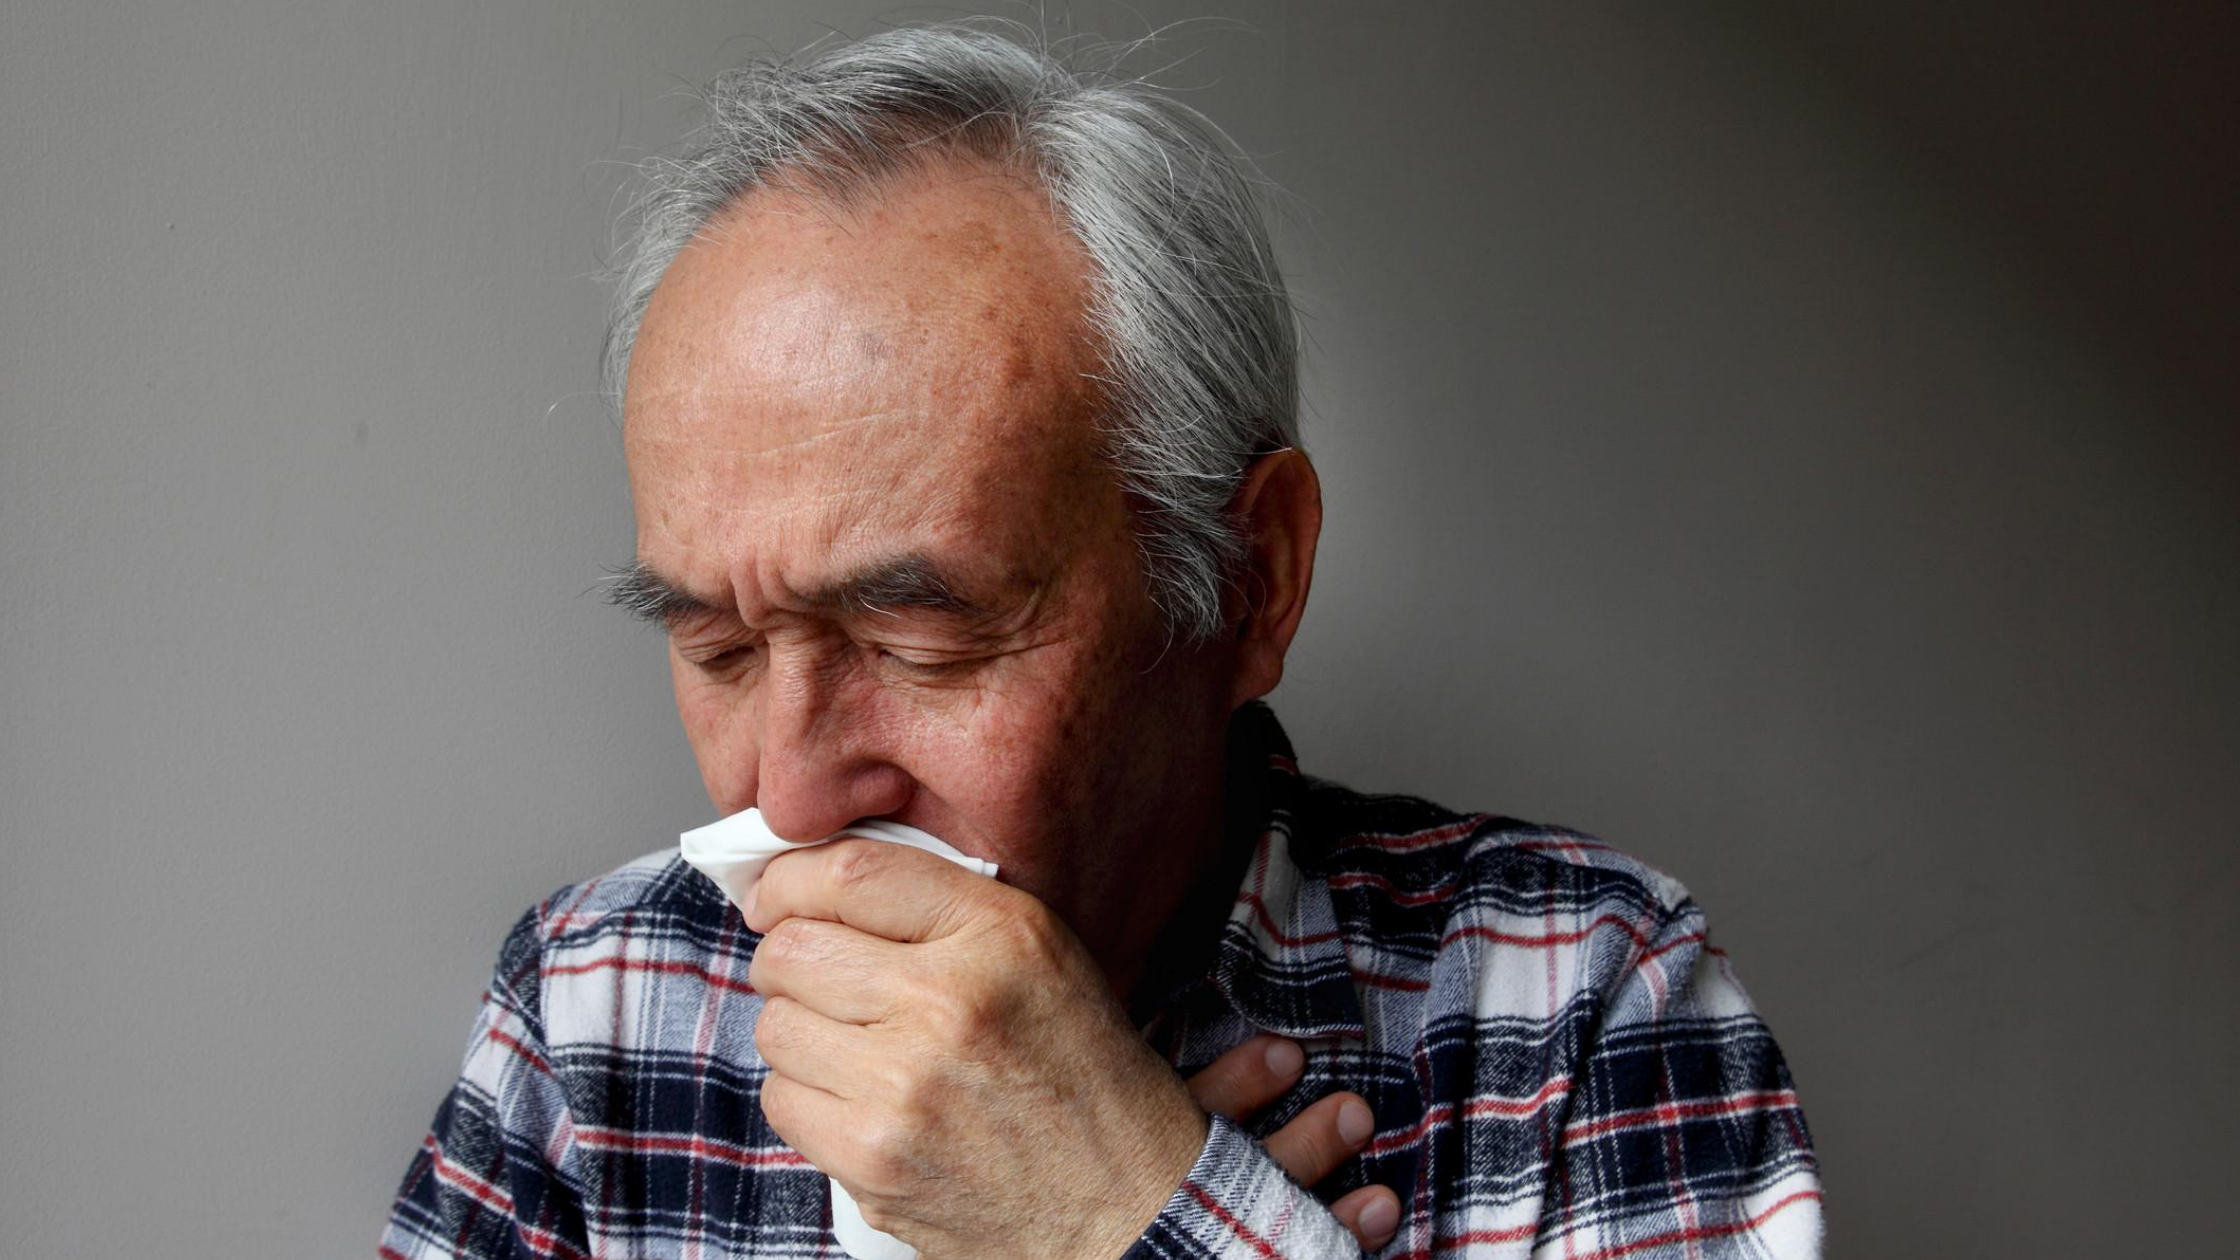 Healthy Living Blog – What's The Difference between The Common Cold, The Flu, and COVID-19?